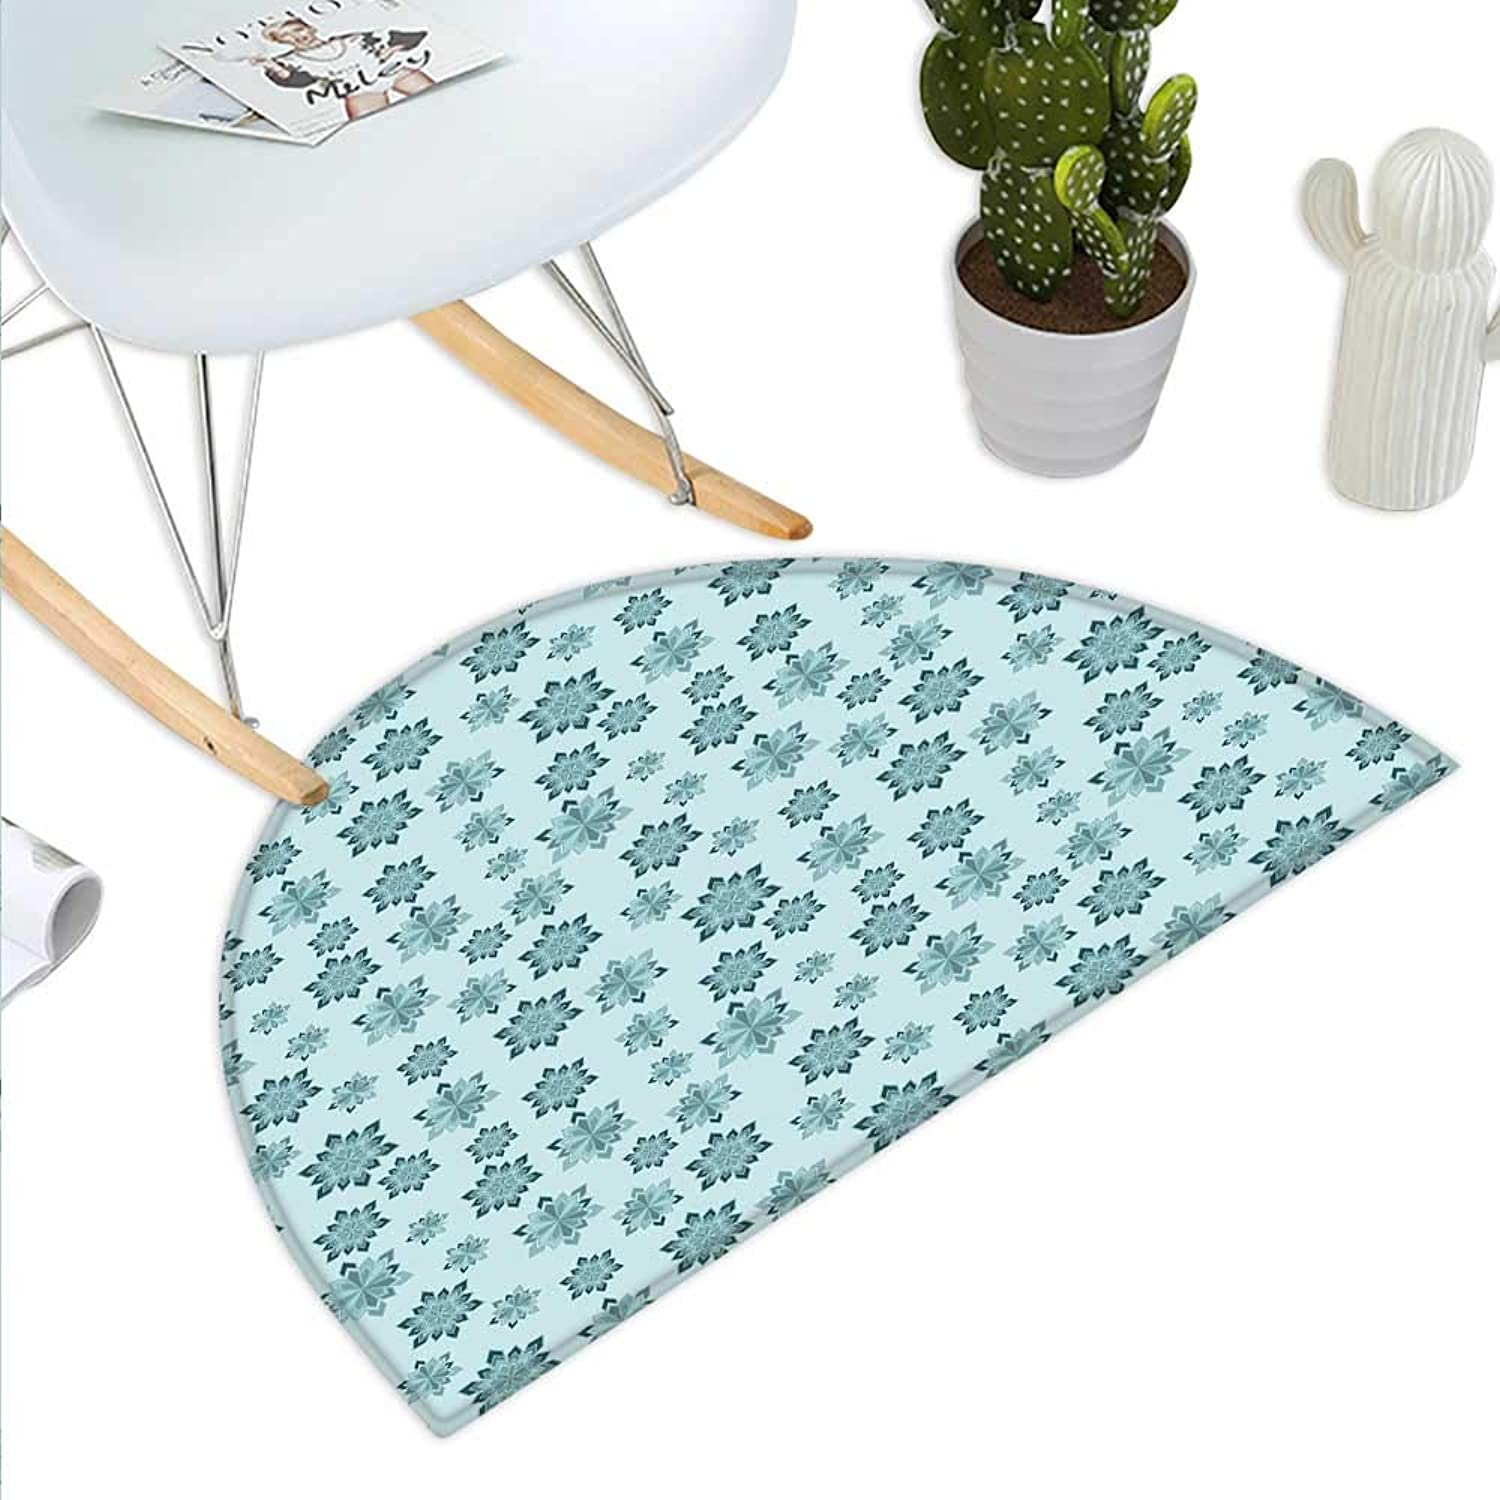 Teal Semicircle Doormat Wintertime Inspiration Ornate Abstract Snowflakes in Pale colors Christmas Halfmoon doormats H 39.3  xD 59  Pale bluee Teal Grey